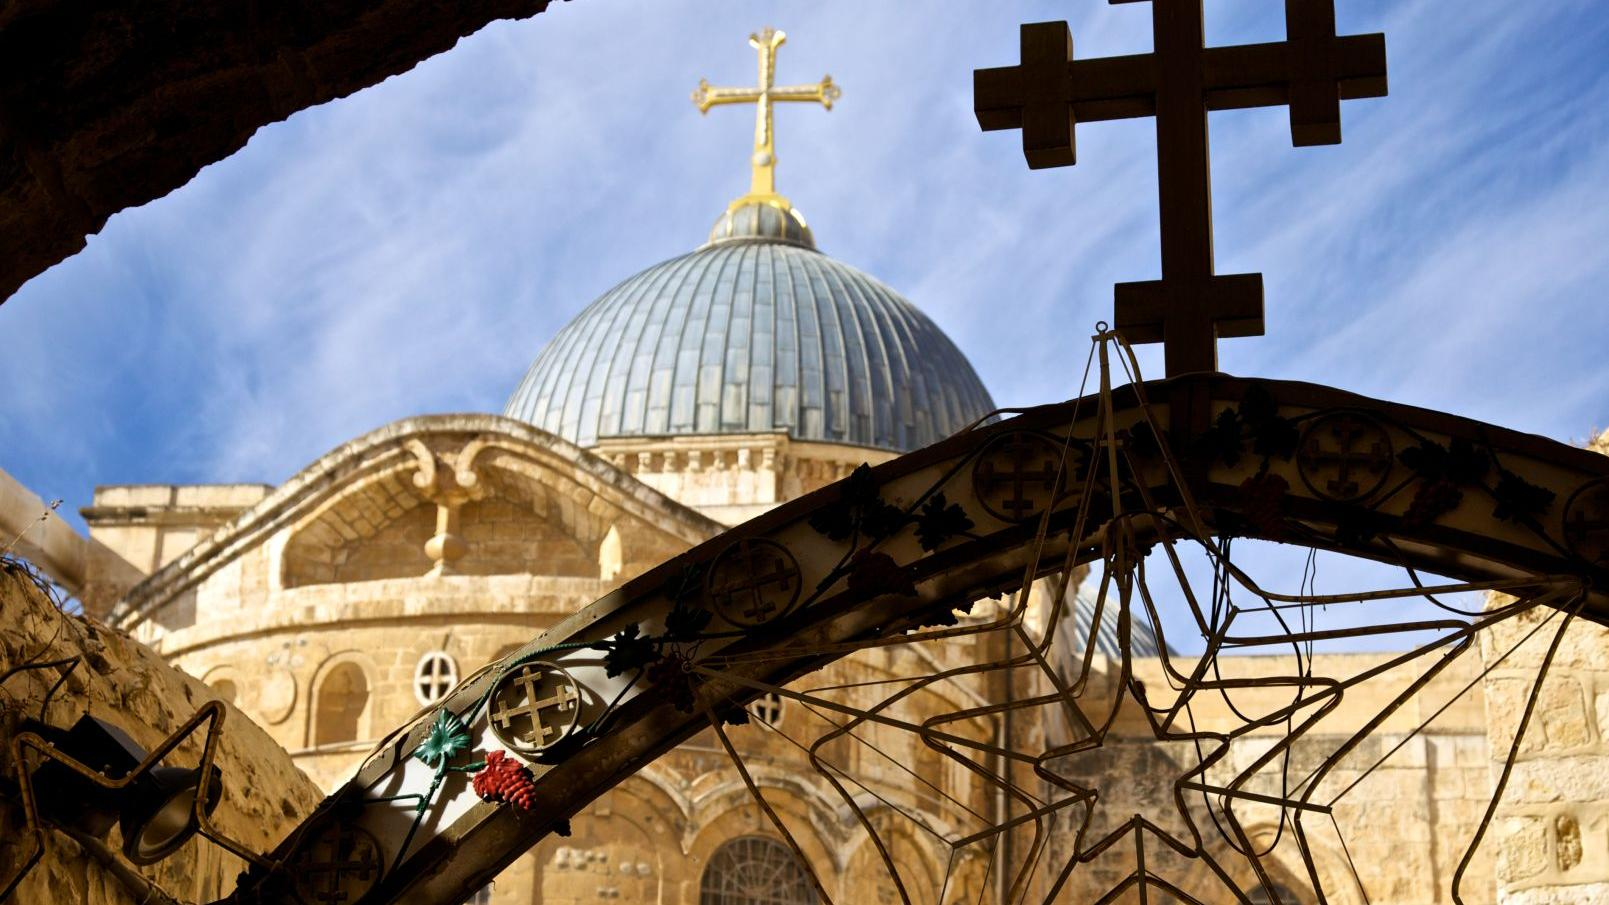 Abdulrauf: The Man Who Saved the Church of the Holy Sepulchre